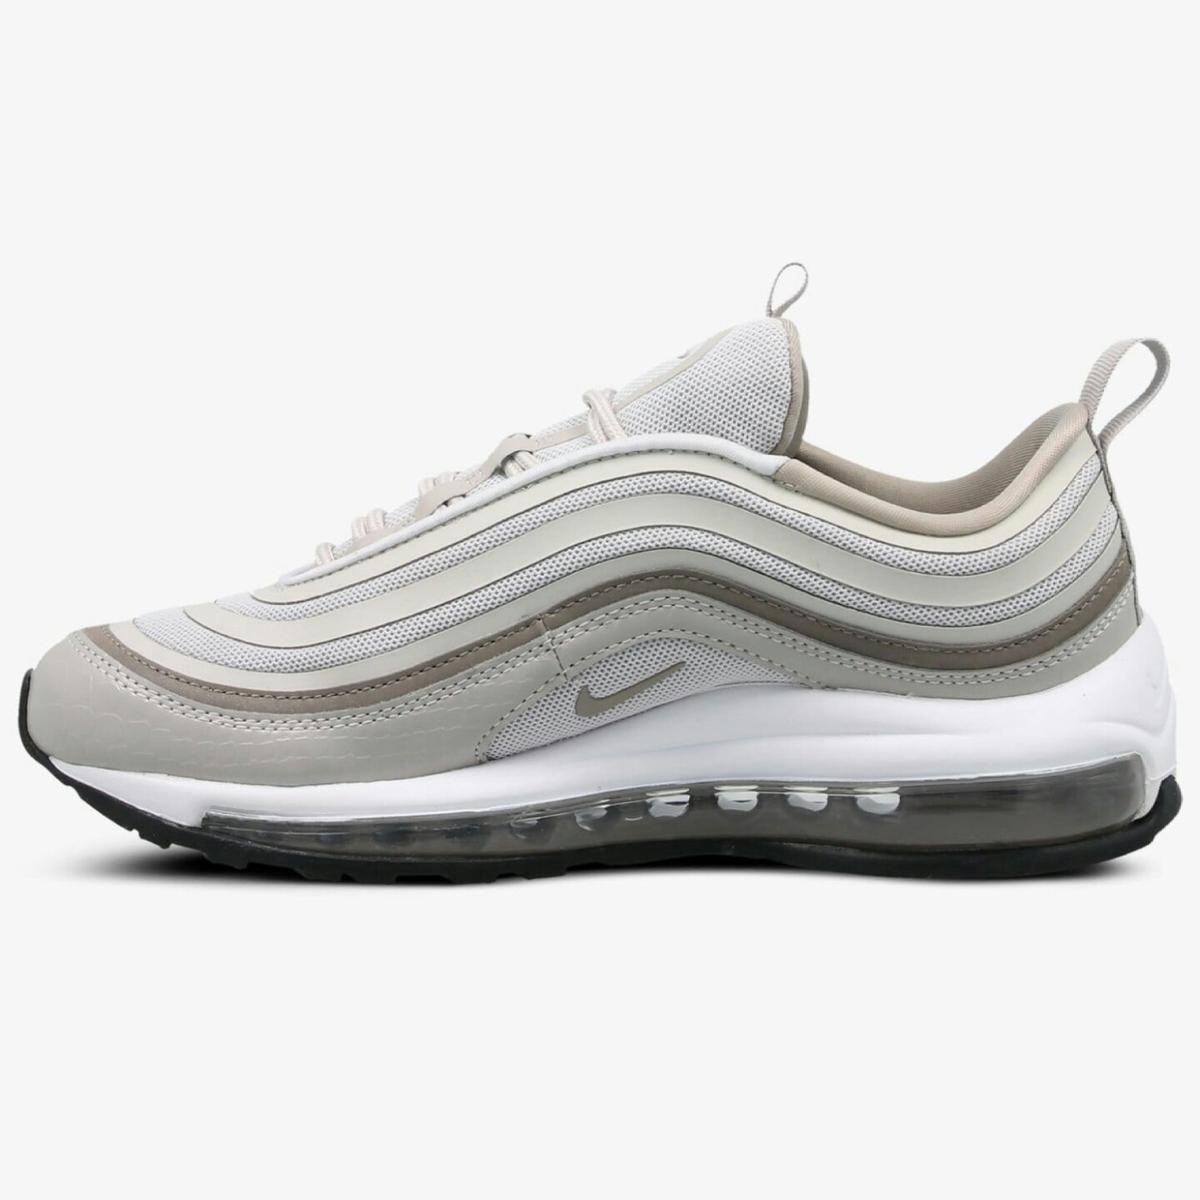 Nike Air Max 97 beig Gr.40 in 20251 Hoheluft Ost for €119.00